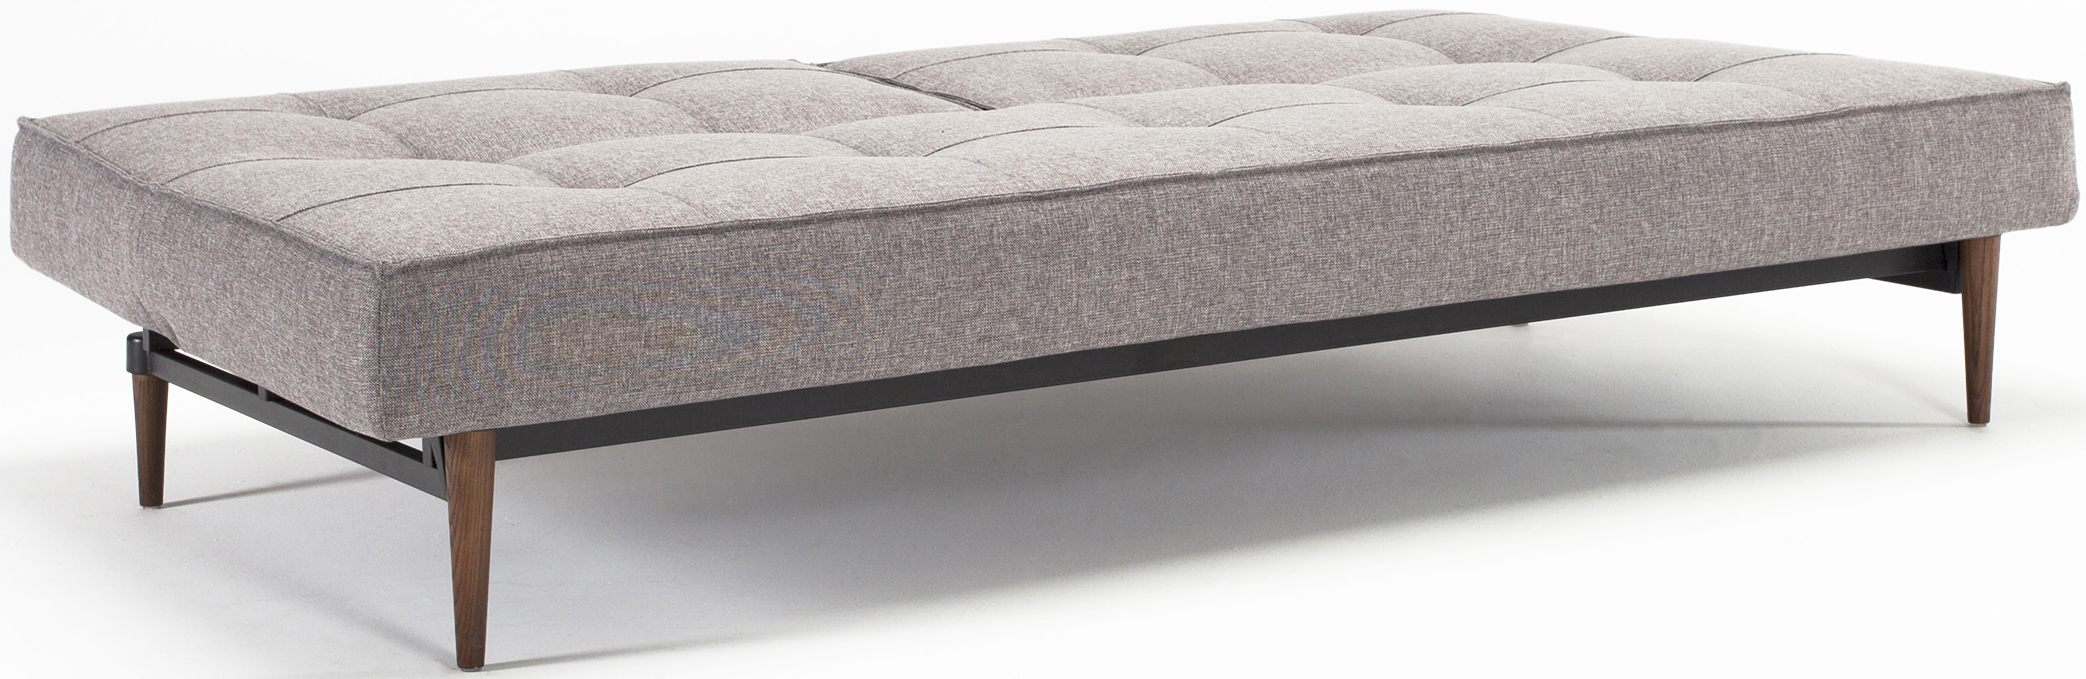 innovation splitback sofa dark styletto 521